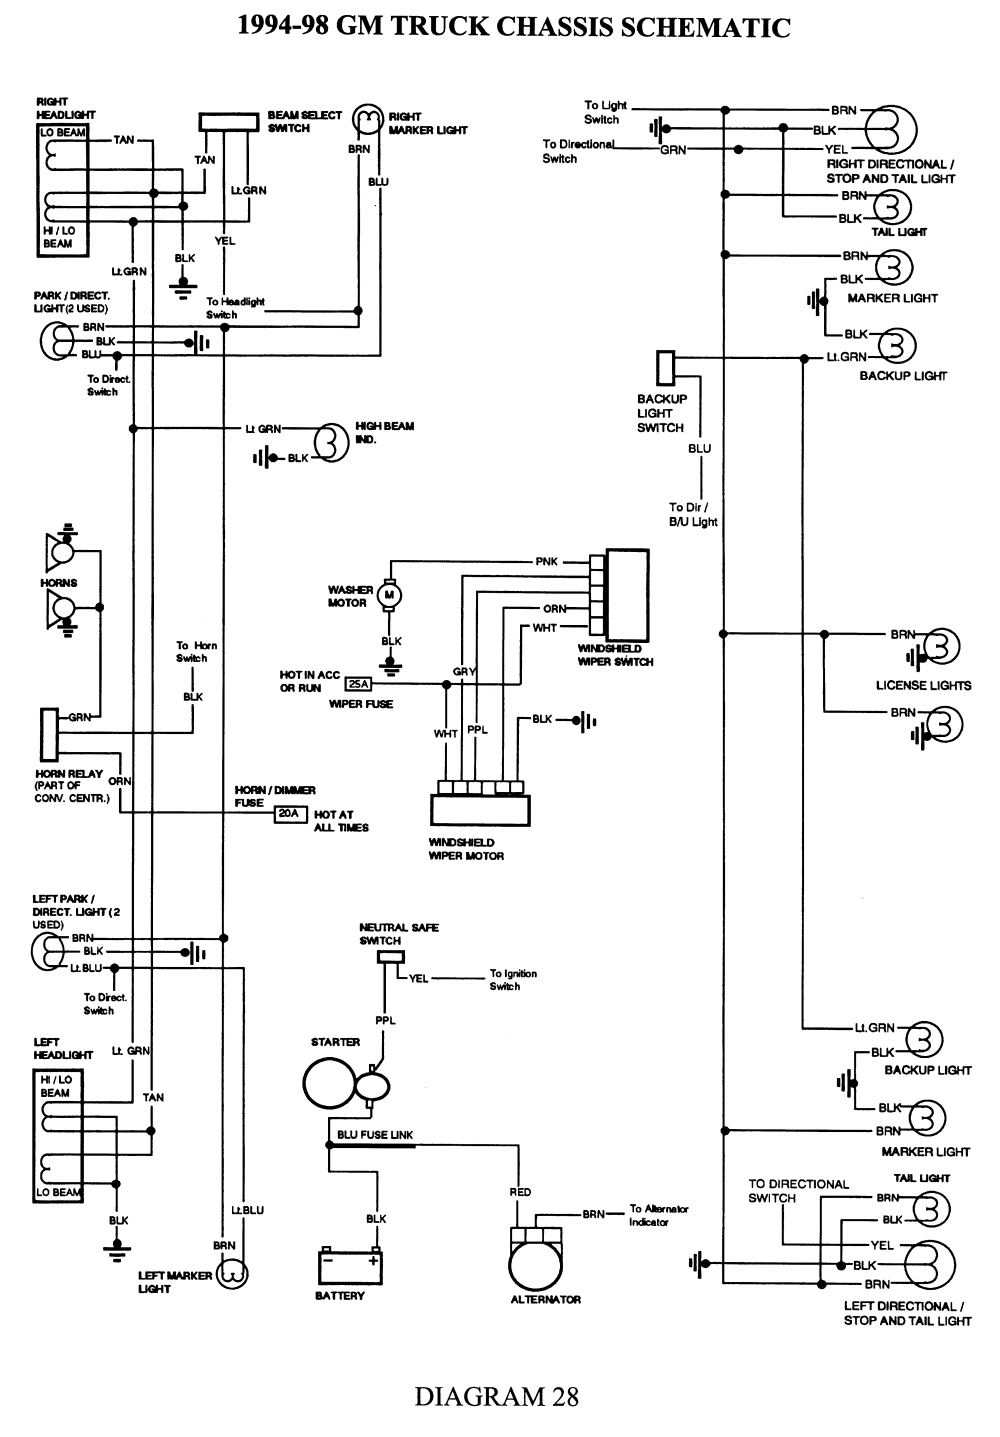 1995 chevy suburban wiring diagram